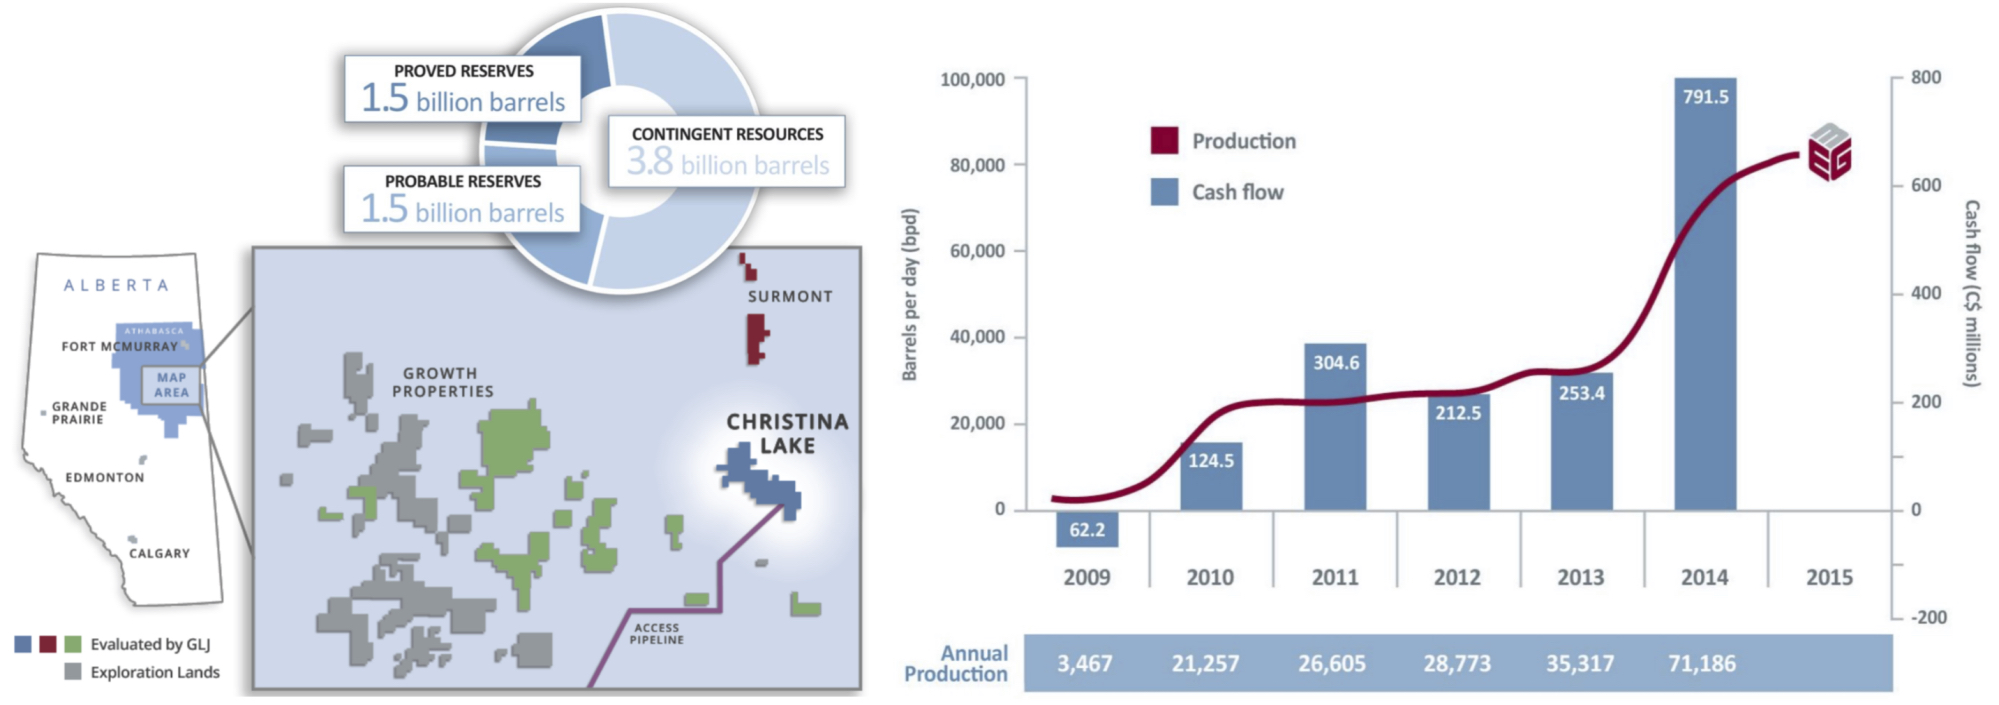 PRODUCTION AND CASH FLOW GROWTH OVER THE PAST 6 YEARS